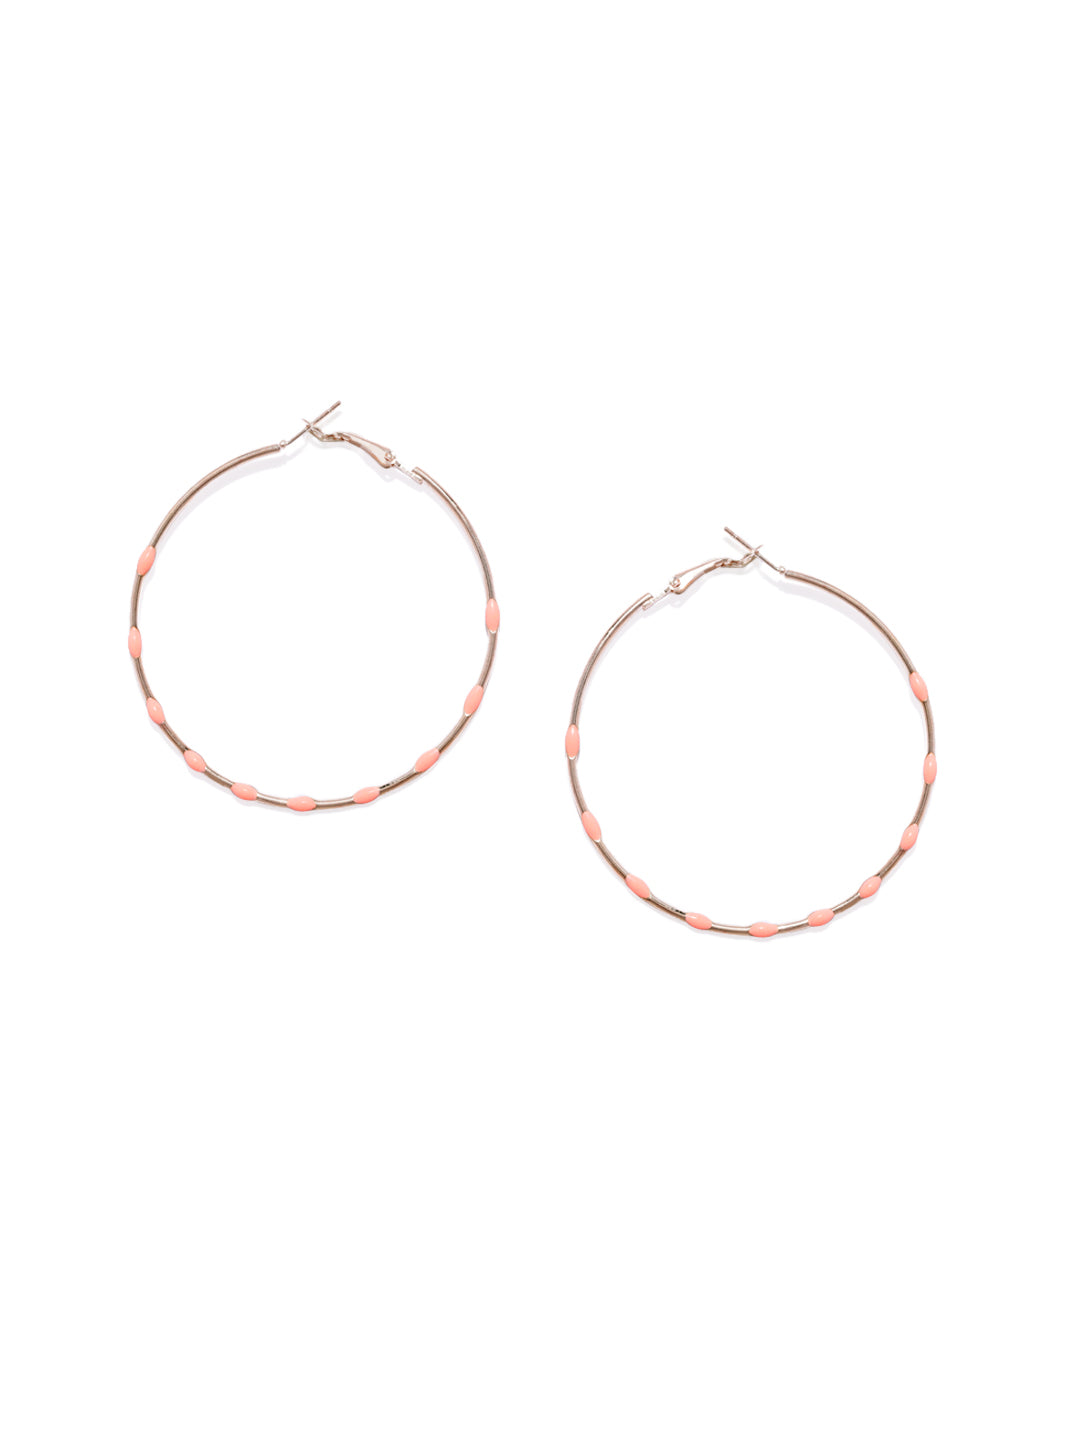 Peach Dotted Circular Hoops - ChicMela